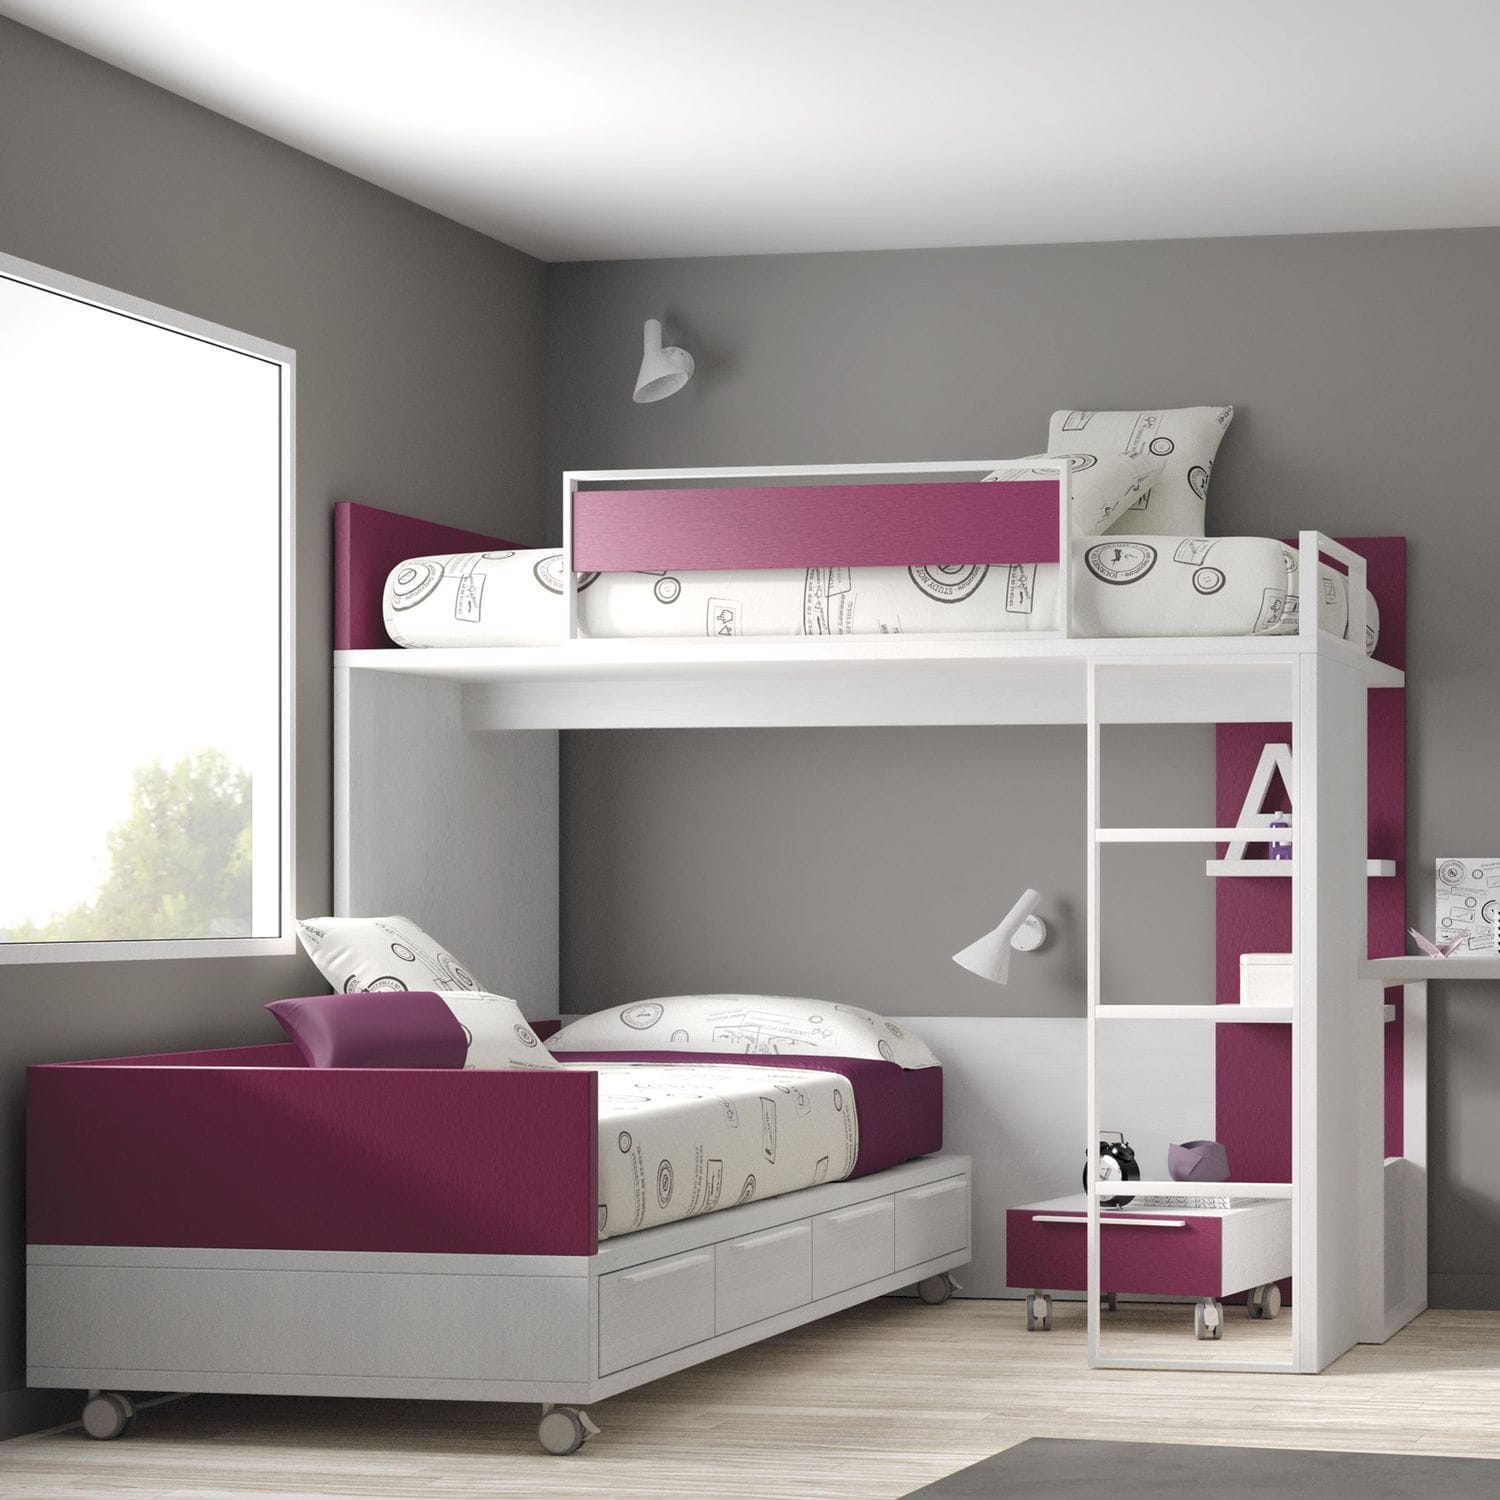 corner bunk bed single contemporary child\u0027s touch 61 ros 1corner bunk bed single contemporary child\u0027s touch 61